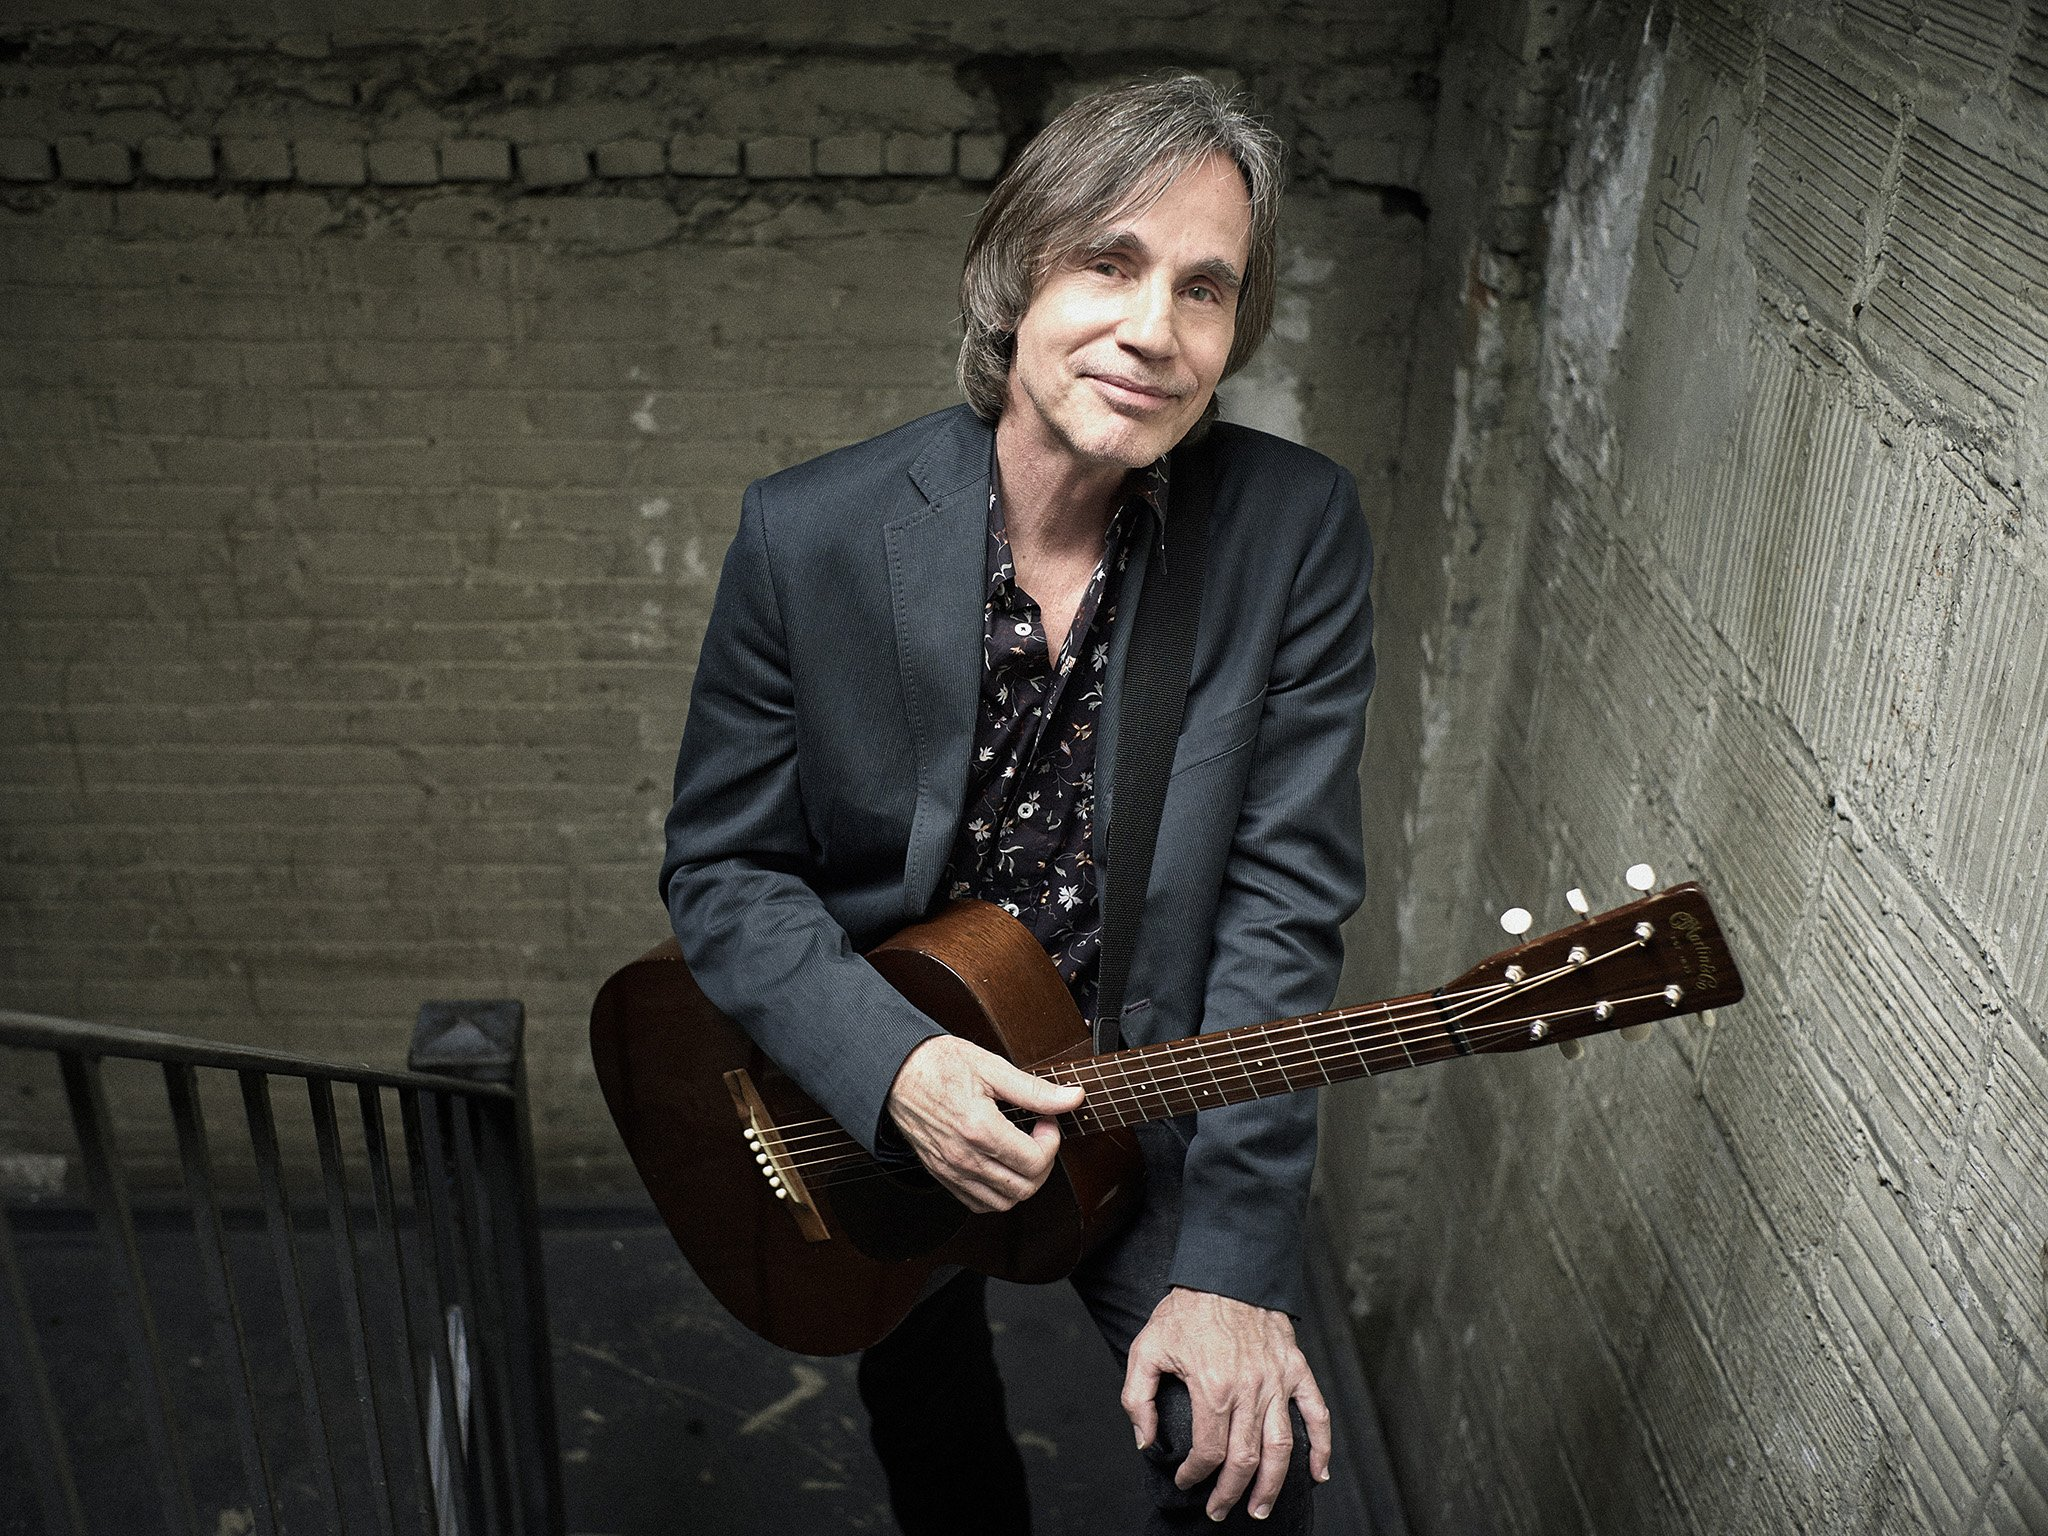 And finally, Happy Birthday to musician Jackson Browne! Xx